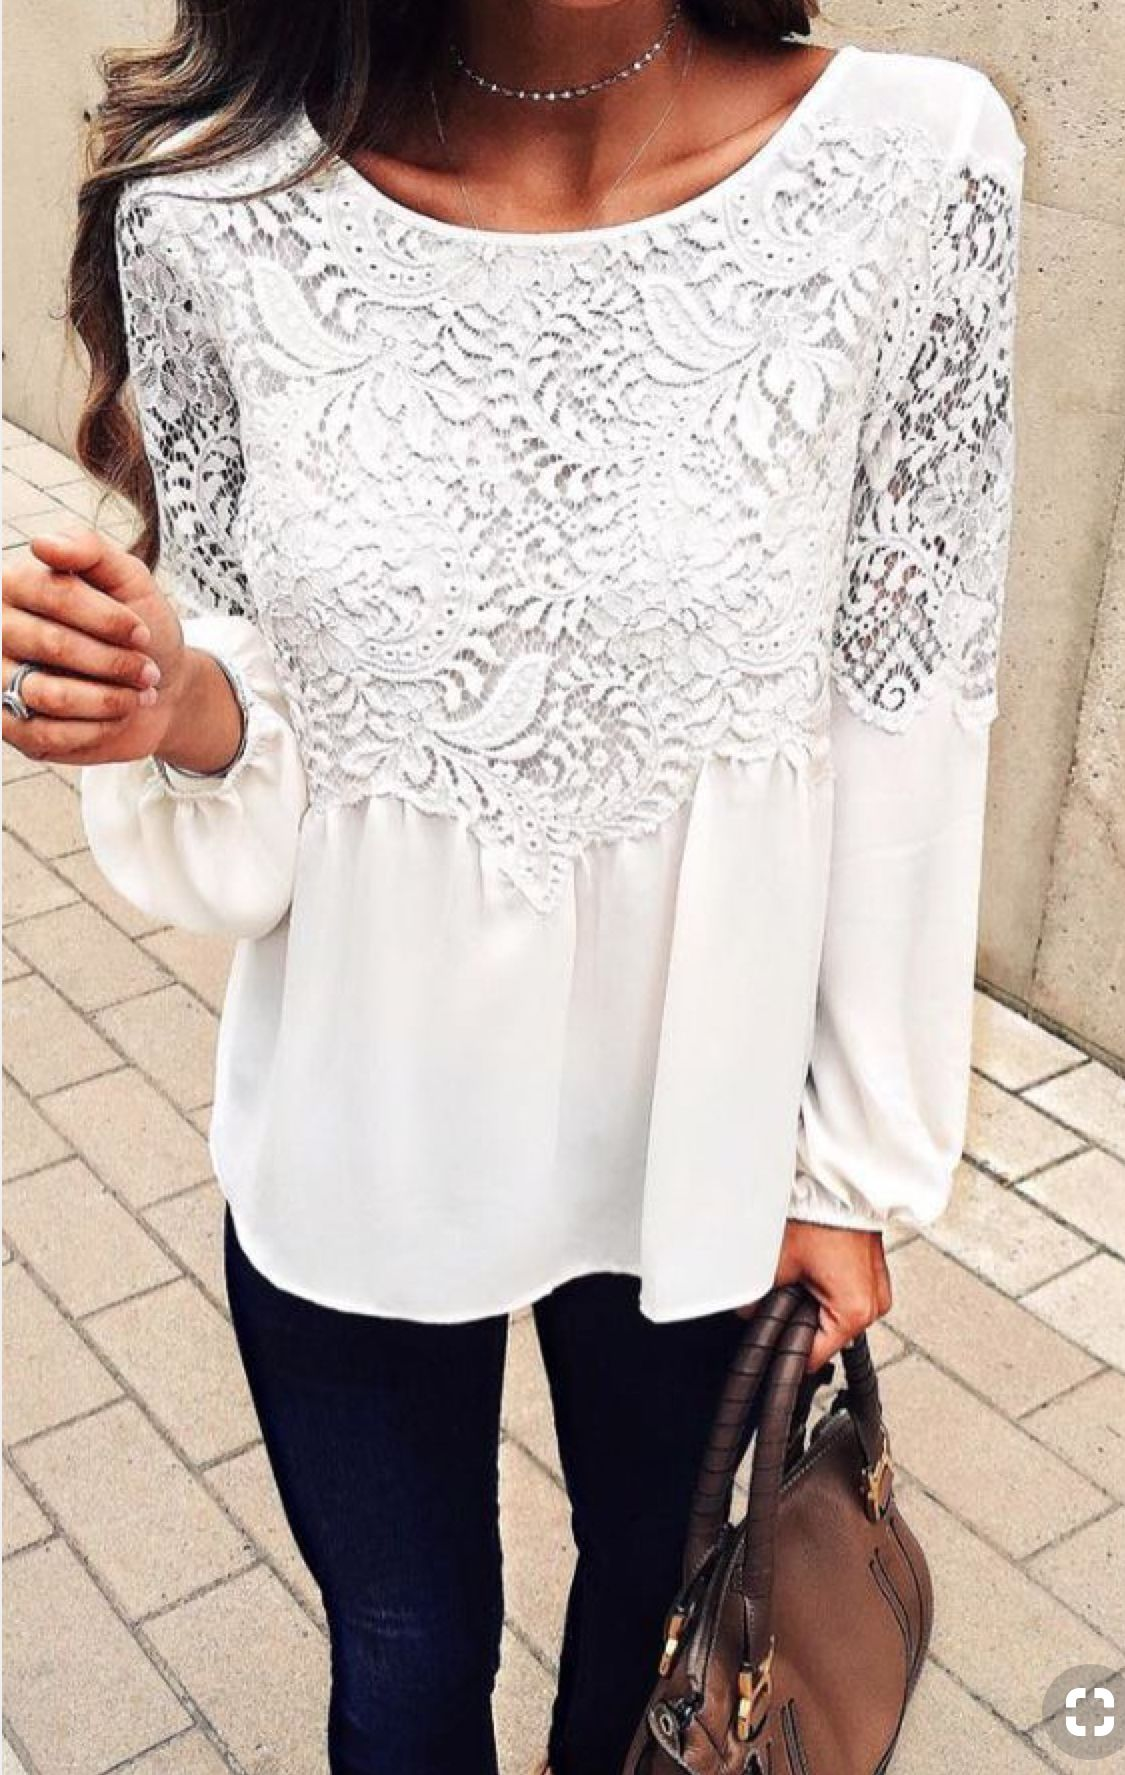 bec116e6ed68b0 white lace blouse | style | Fashion, Outfits, Style